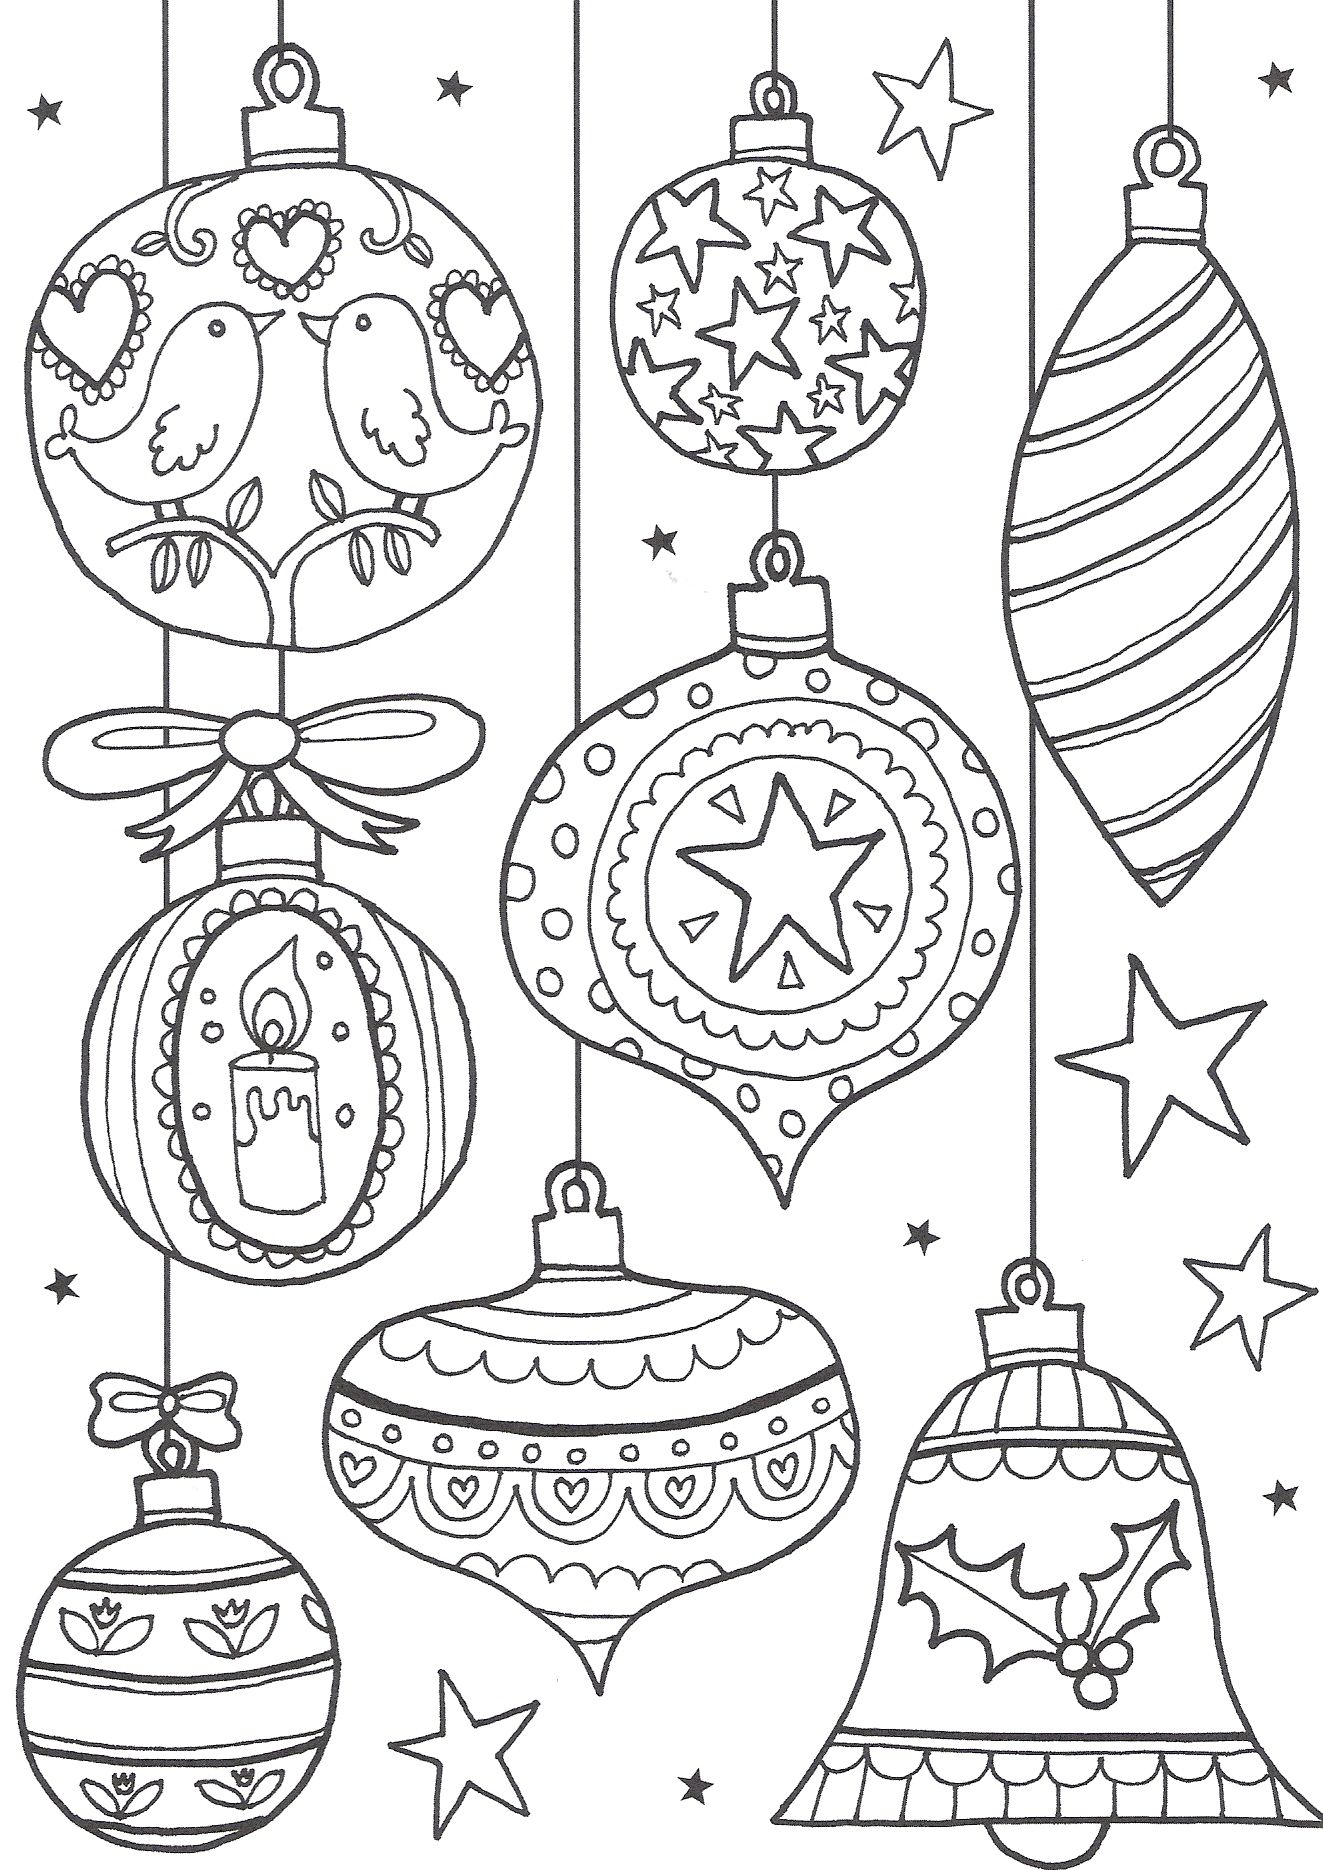 Christmas Coloring Pages With Free Colouring For Adults The Ultimate Roundup